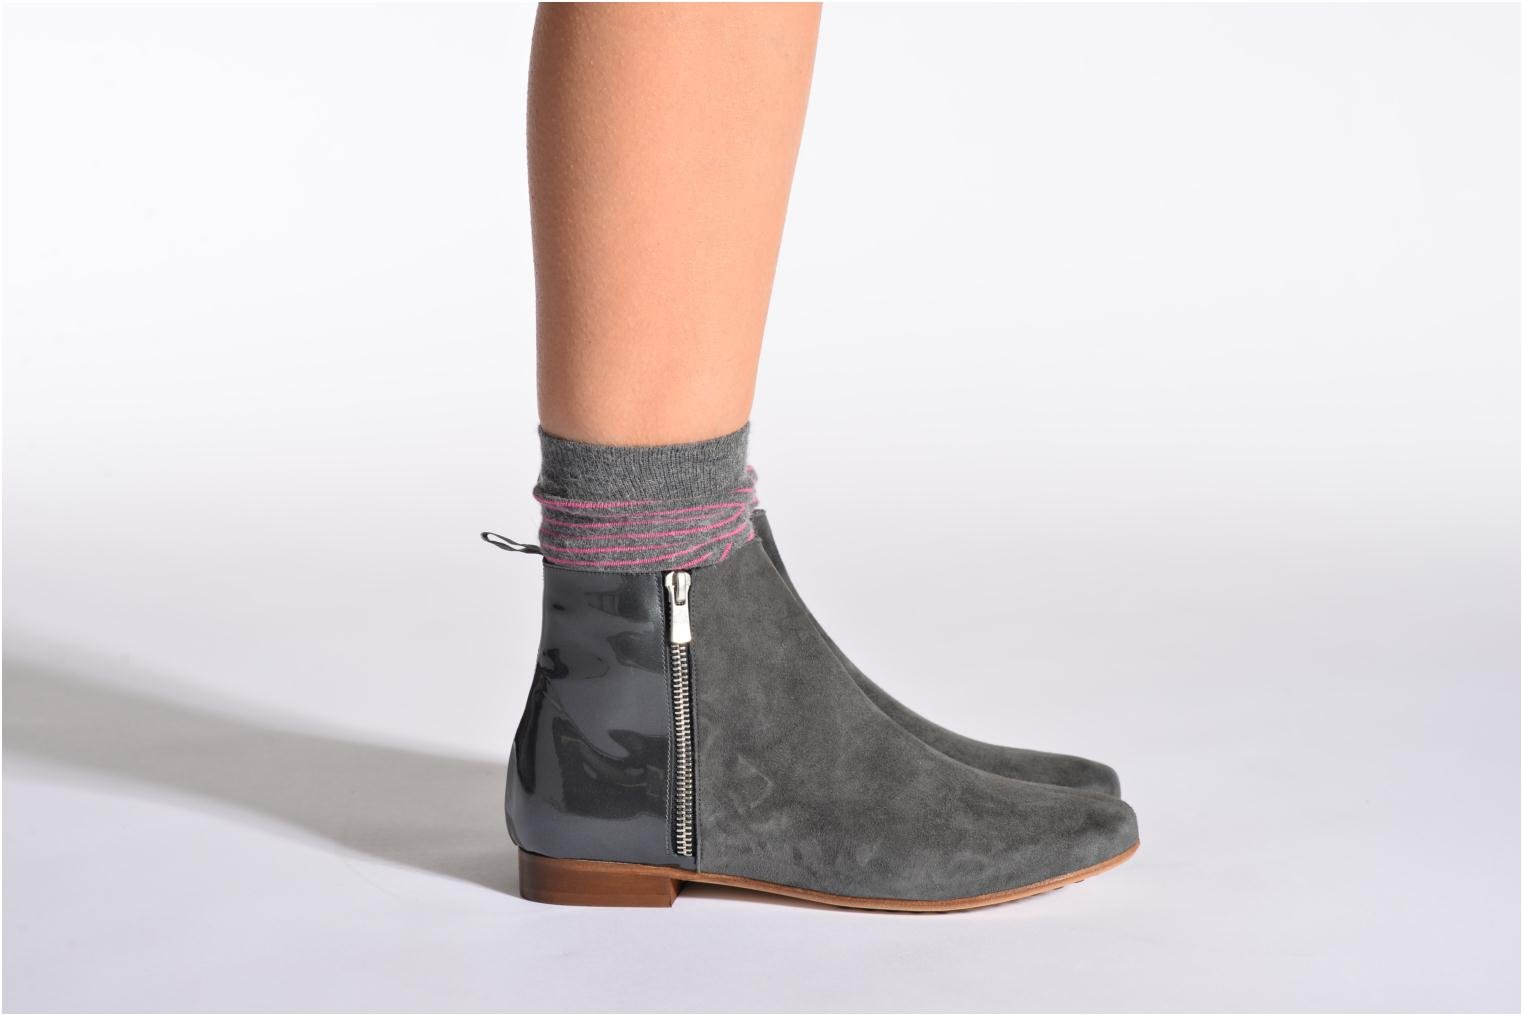 Chaussettes RAYURES TENDRESSES 032 - gris